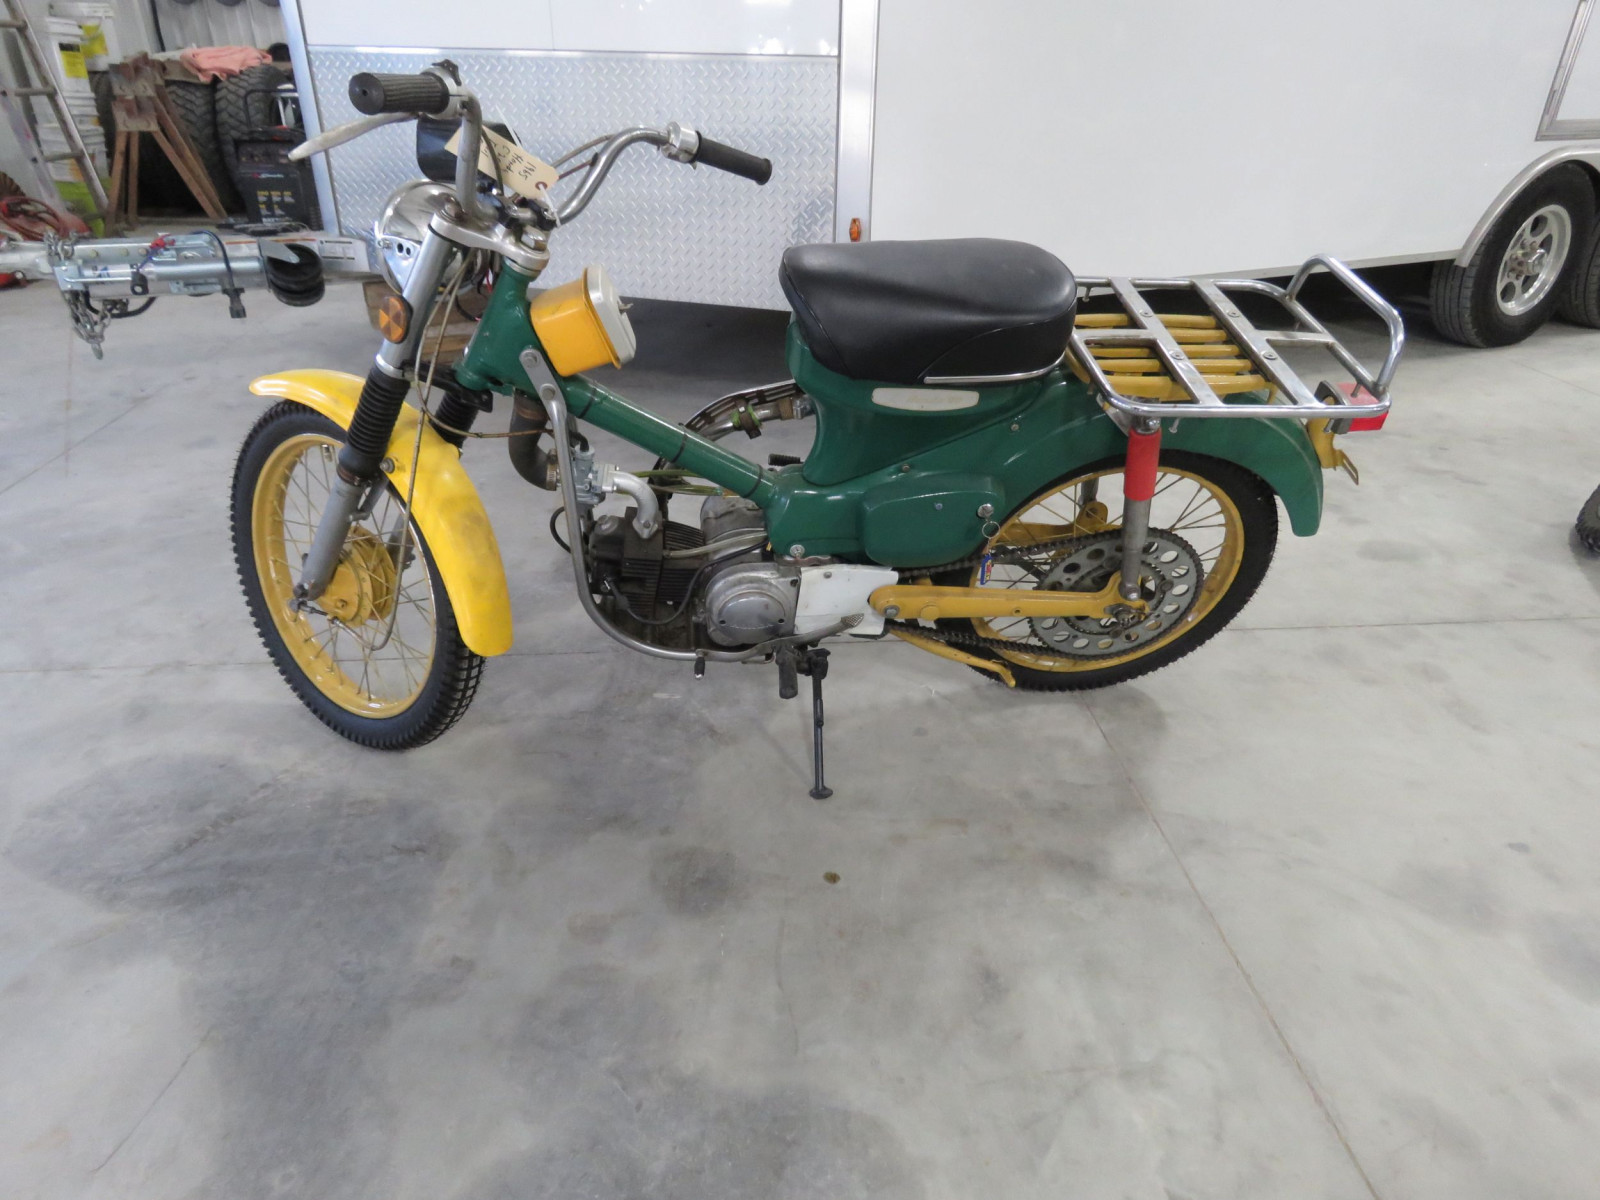 1965 Honda trail 90 Scooter - Image 2